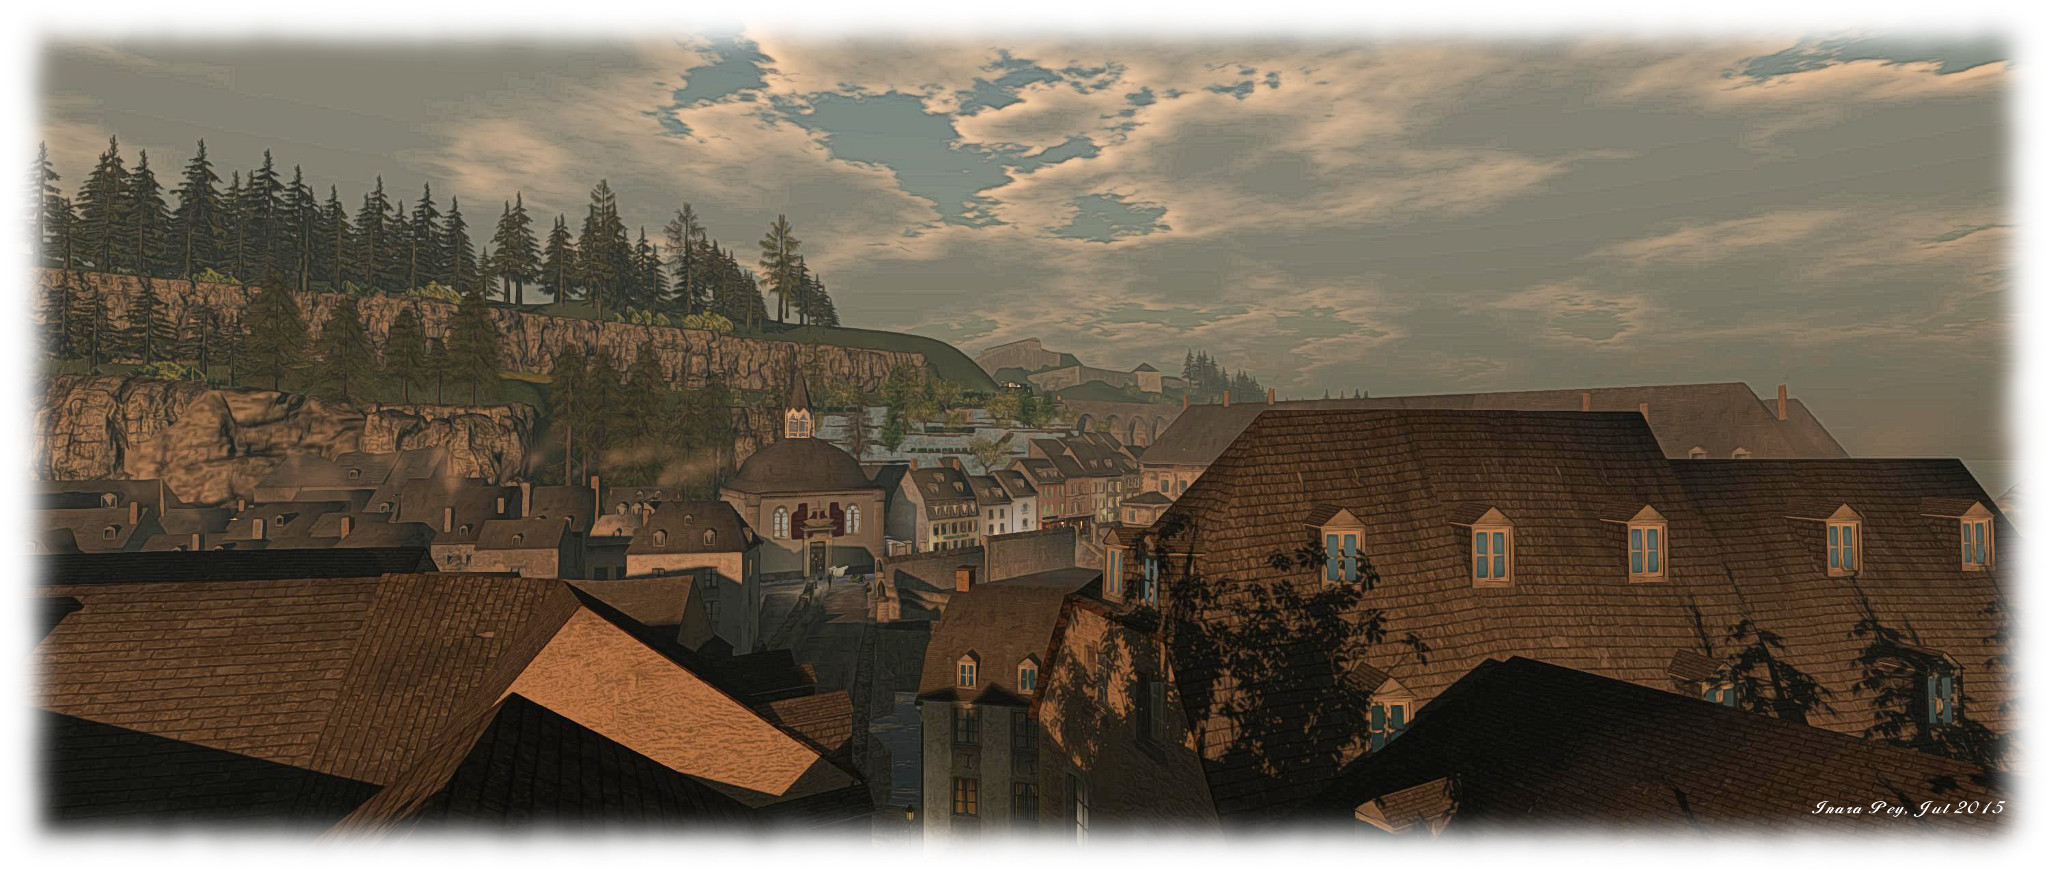 The Virtual Pfaffenthal; Inara Pey, July 2015, on Flickr